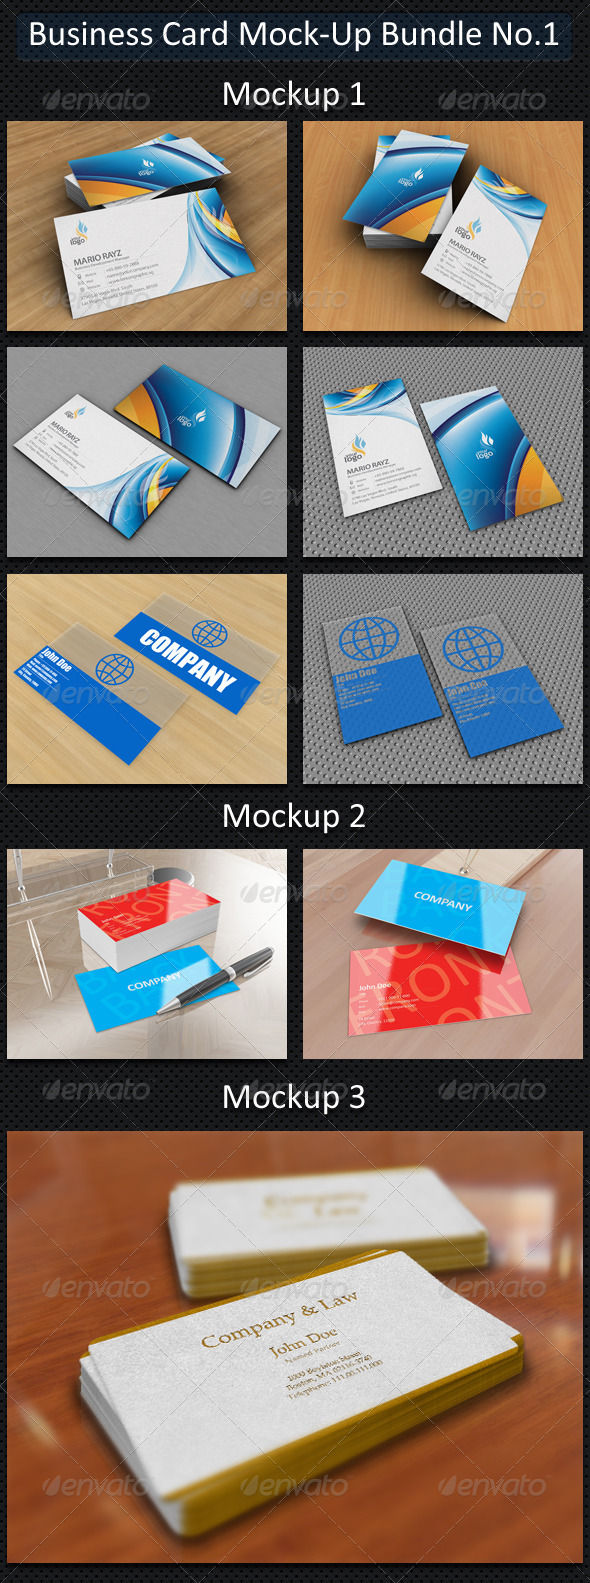 Business Card Mock-Up Bundle No.1 - Business Cards Print